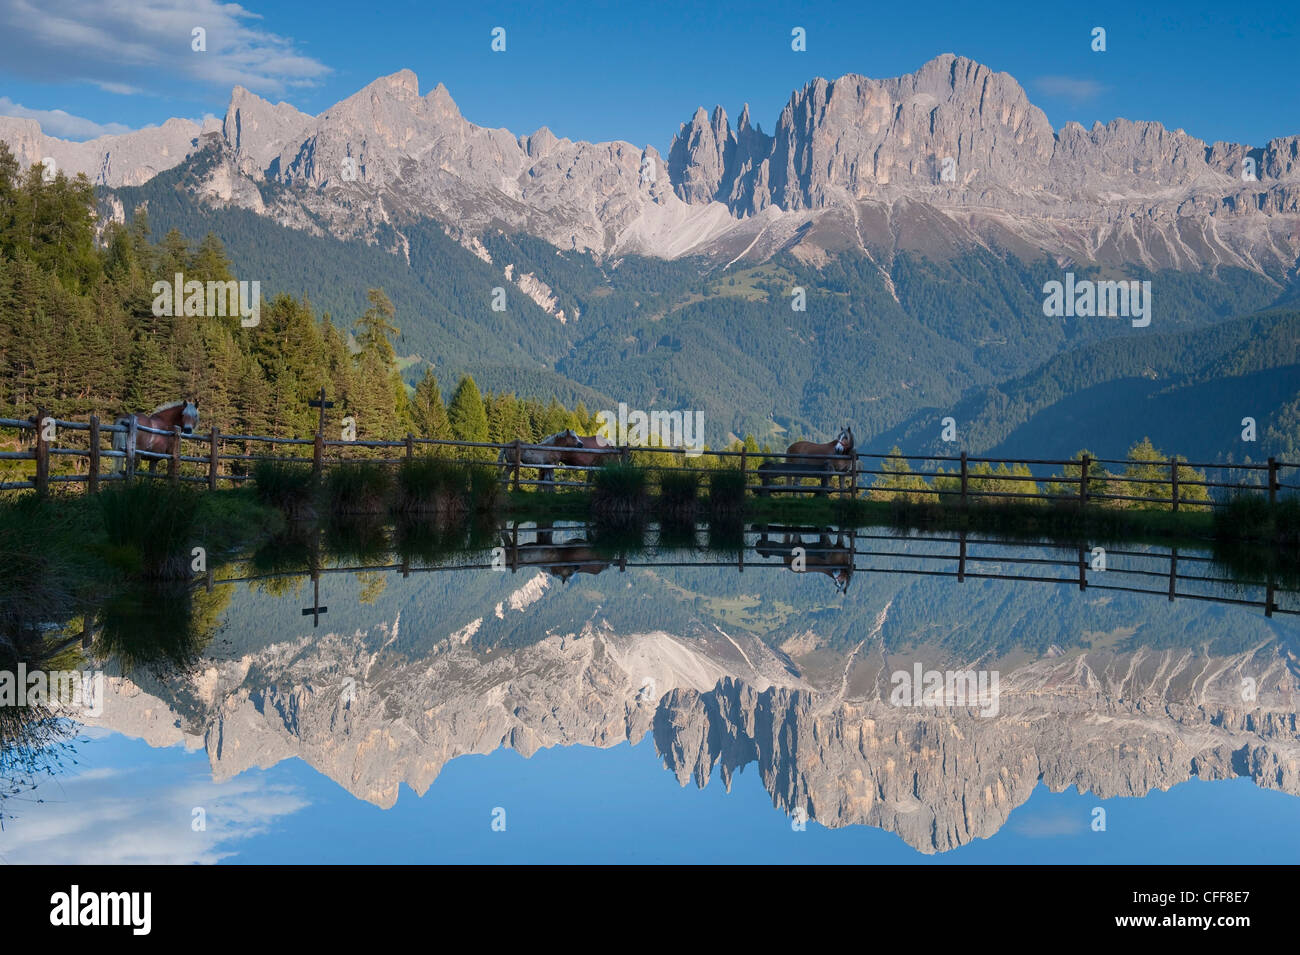 Reflections of mountains on lake Wuhn, Valley of Tiersertal, South Tyrol, Alto Adige, Italy, Europe - Stock Image